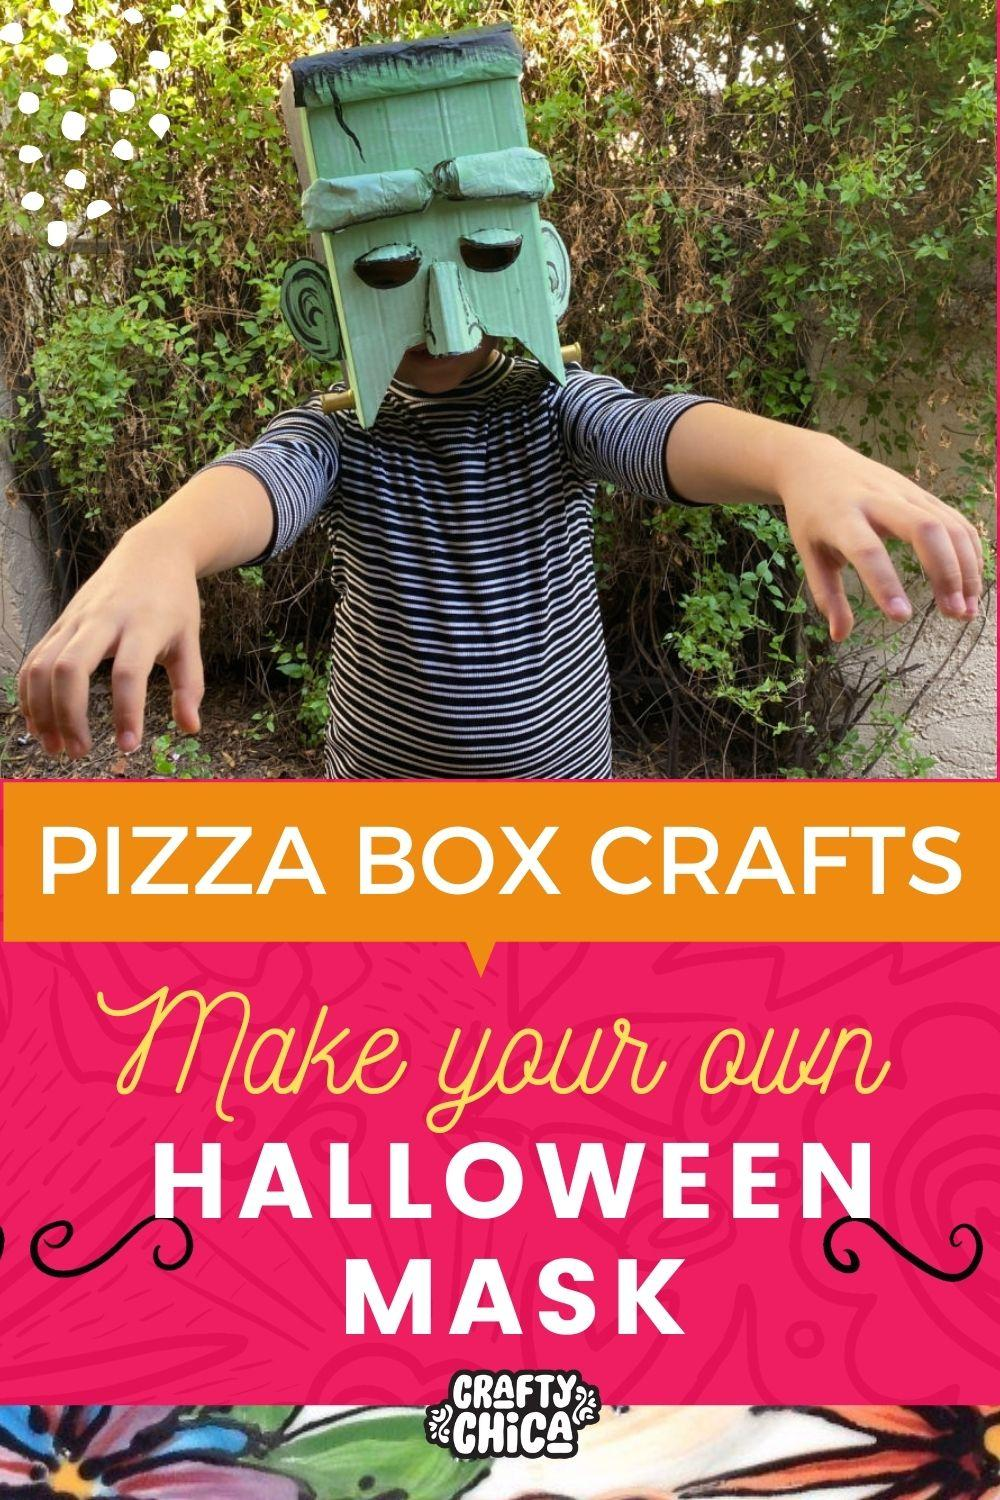 Pizza box crafts Frankenstein mask